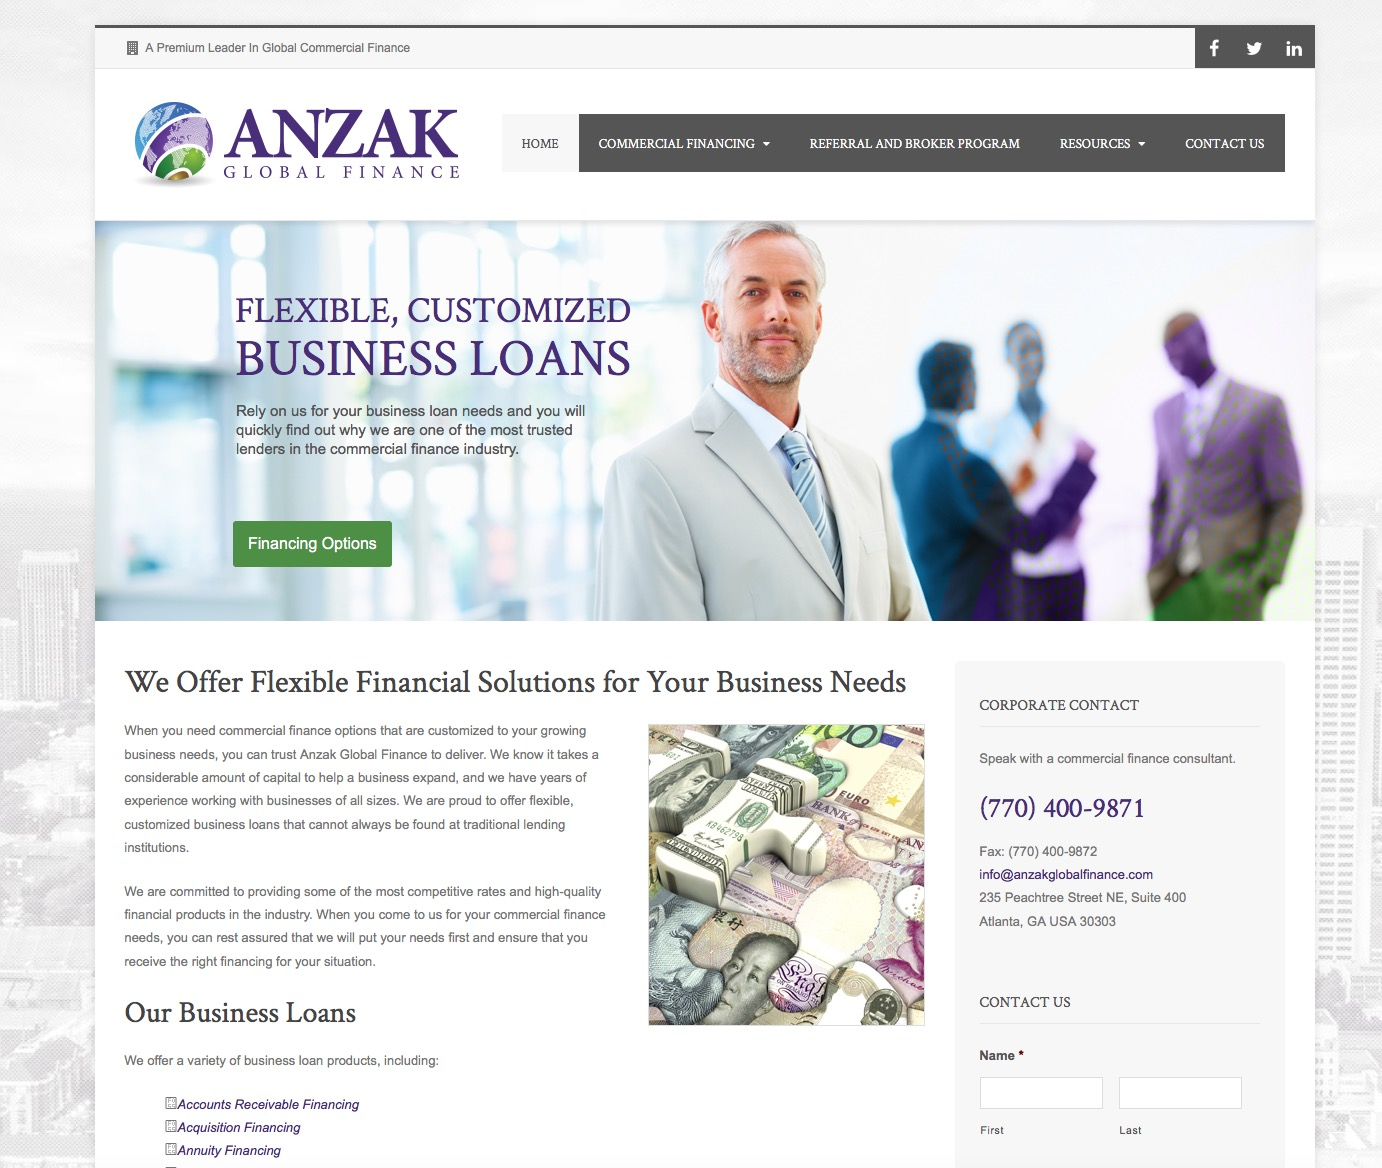 anzak-global-finance